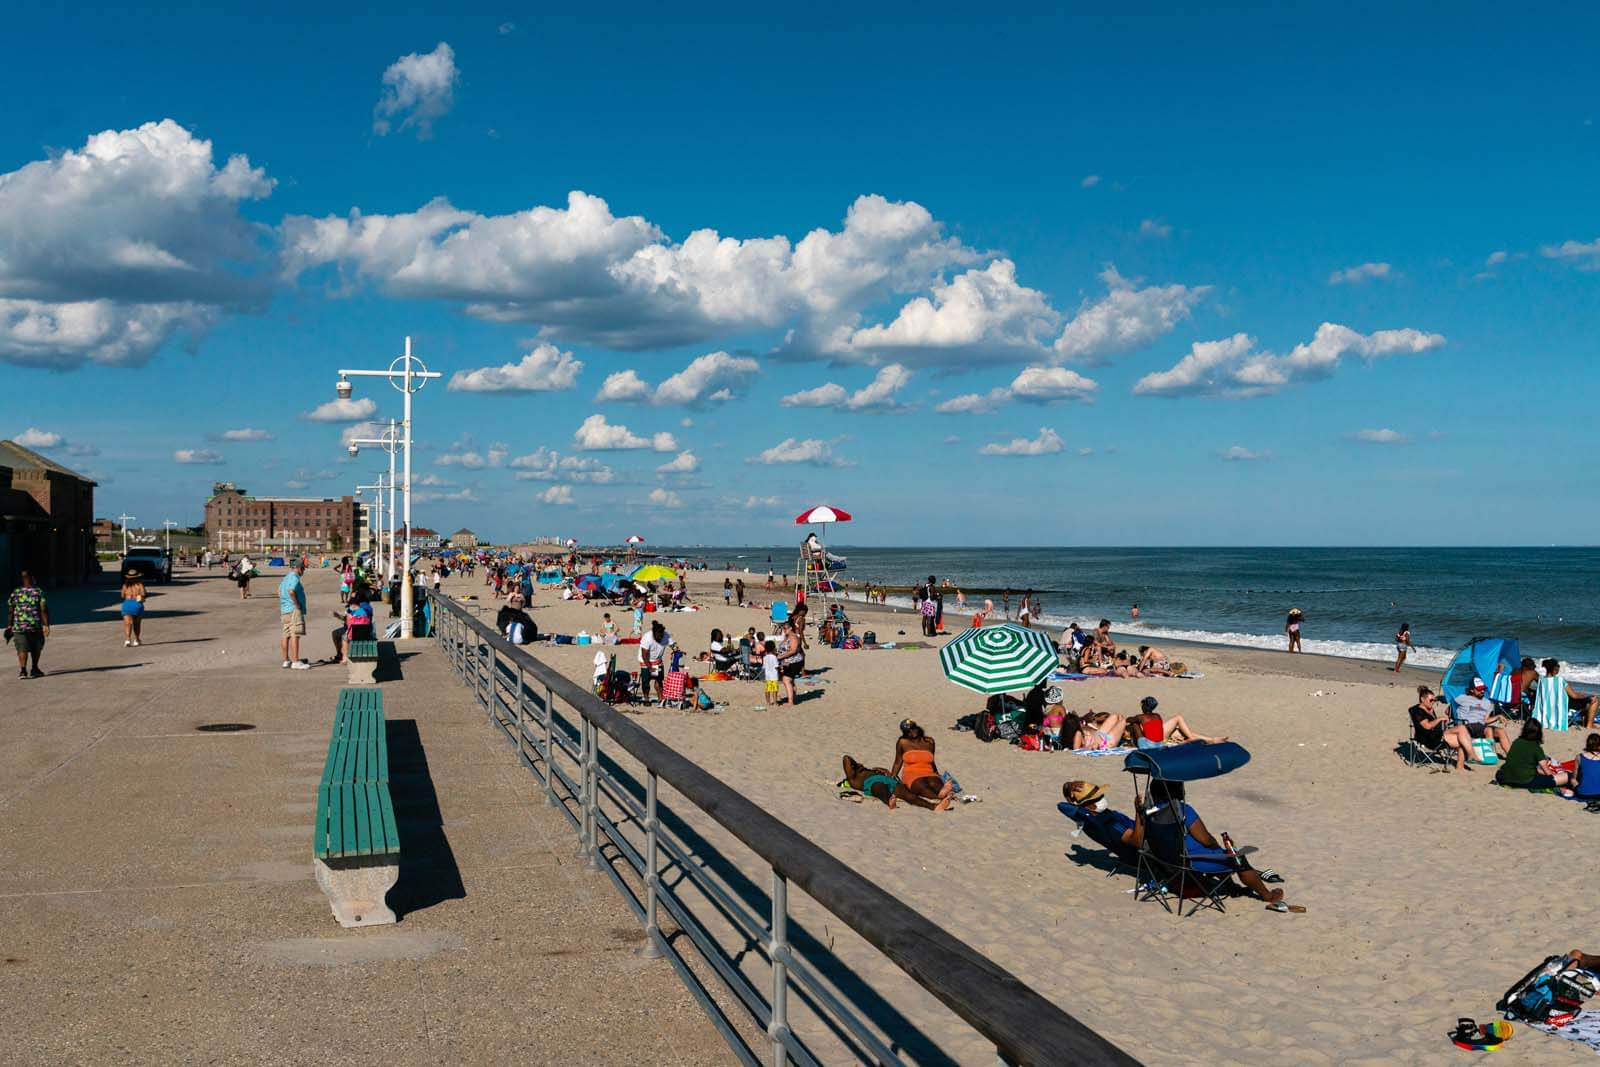 Jacob Riis Beach and Boardwalk in Queens